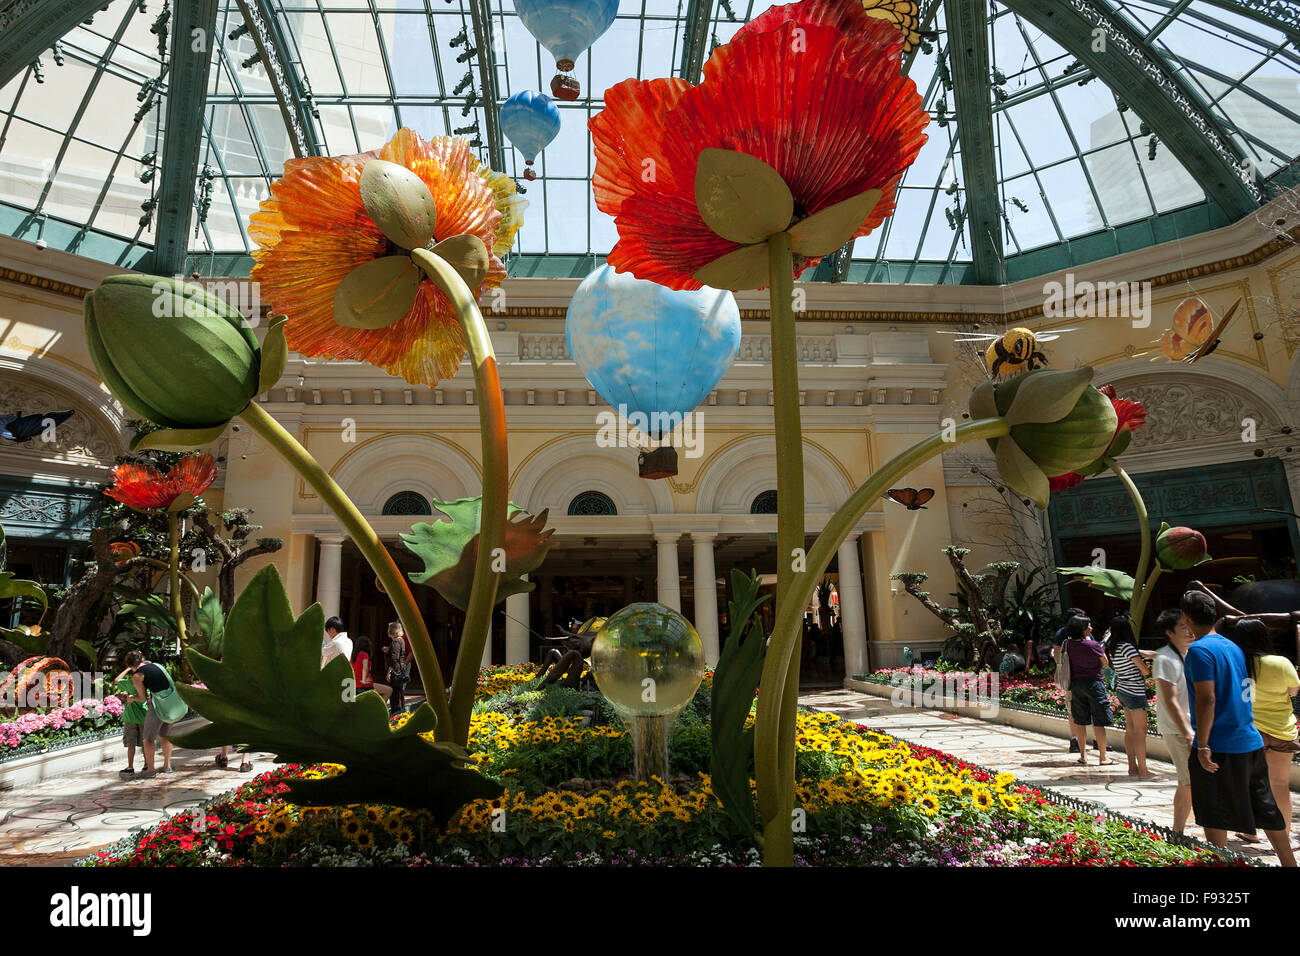 Exhibits In Botanical Garden Conservatory, Bellagio Hotel, Las Vegas,  Nevada, USA